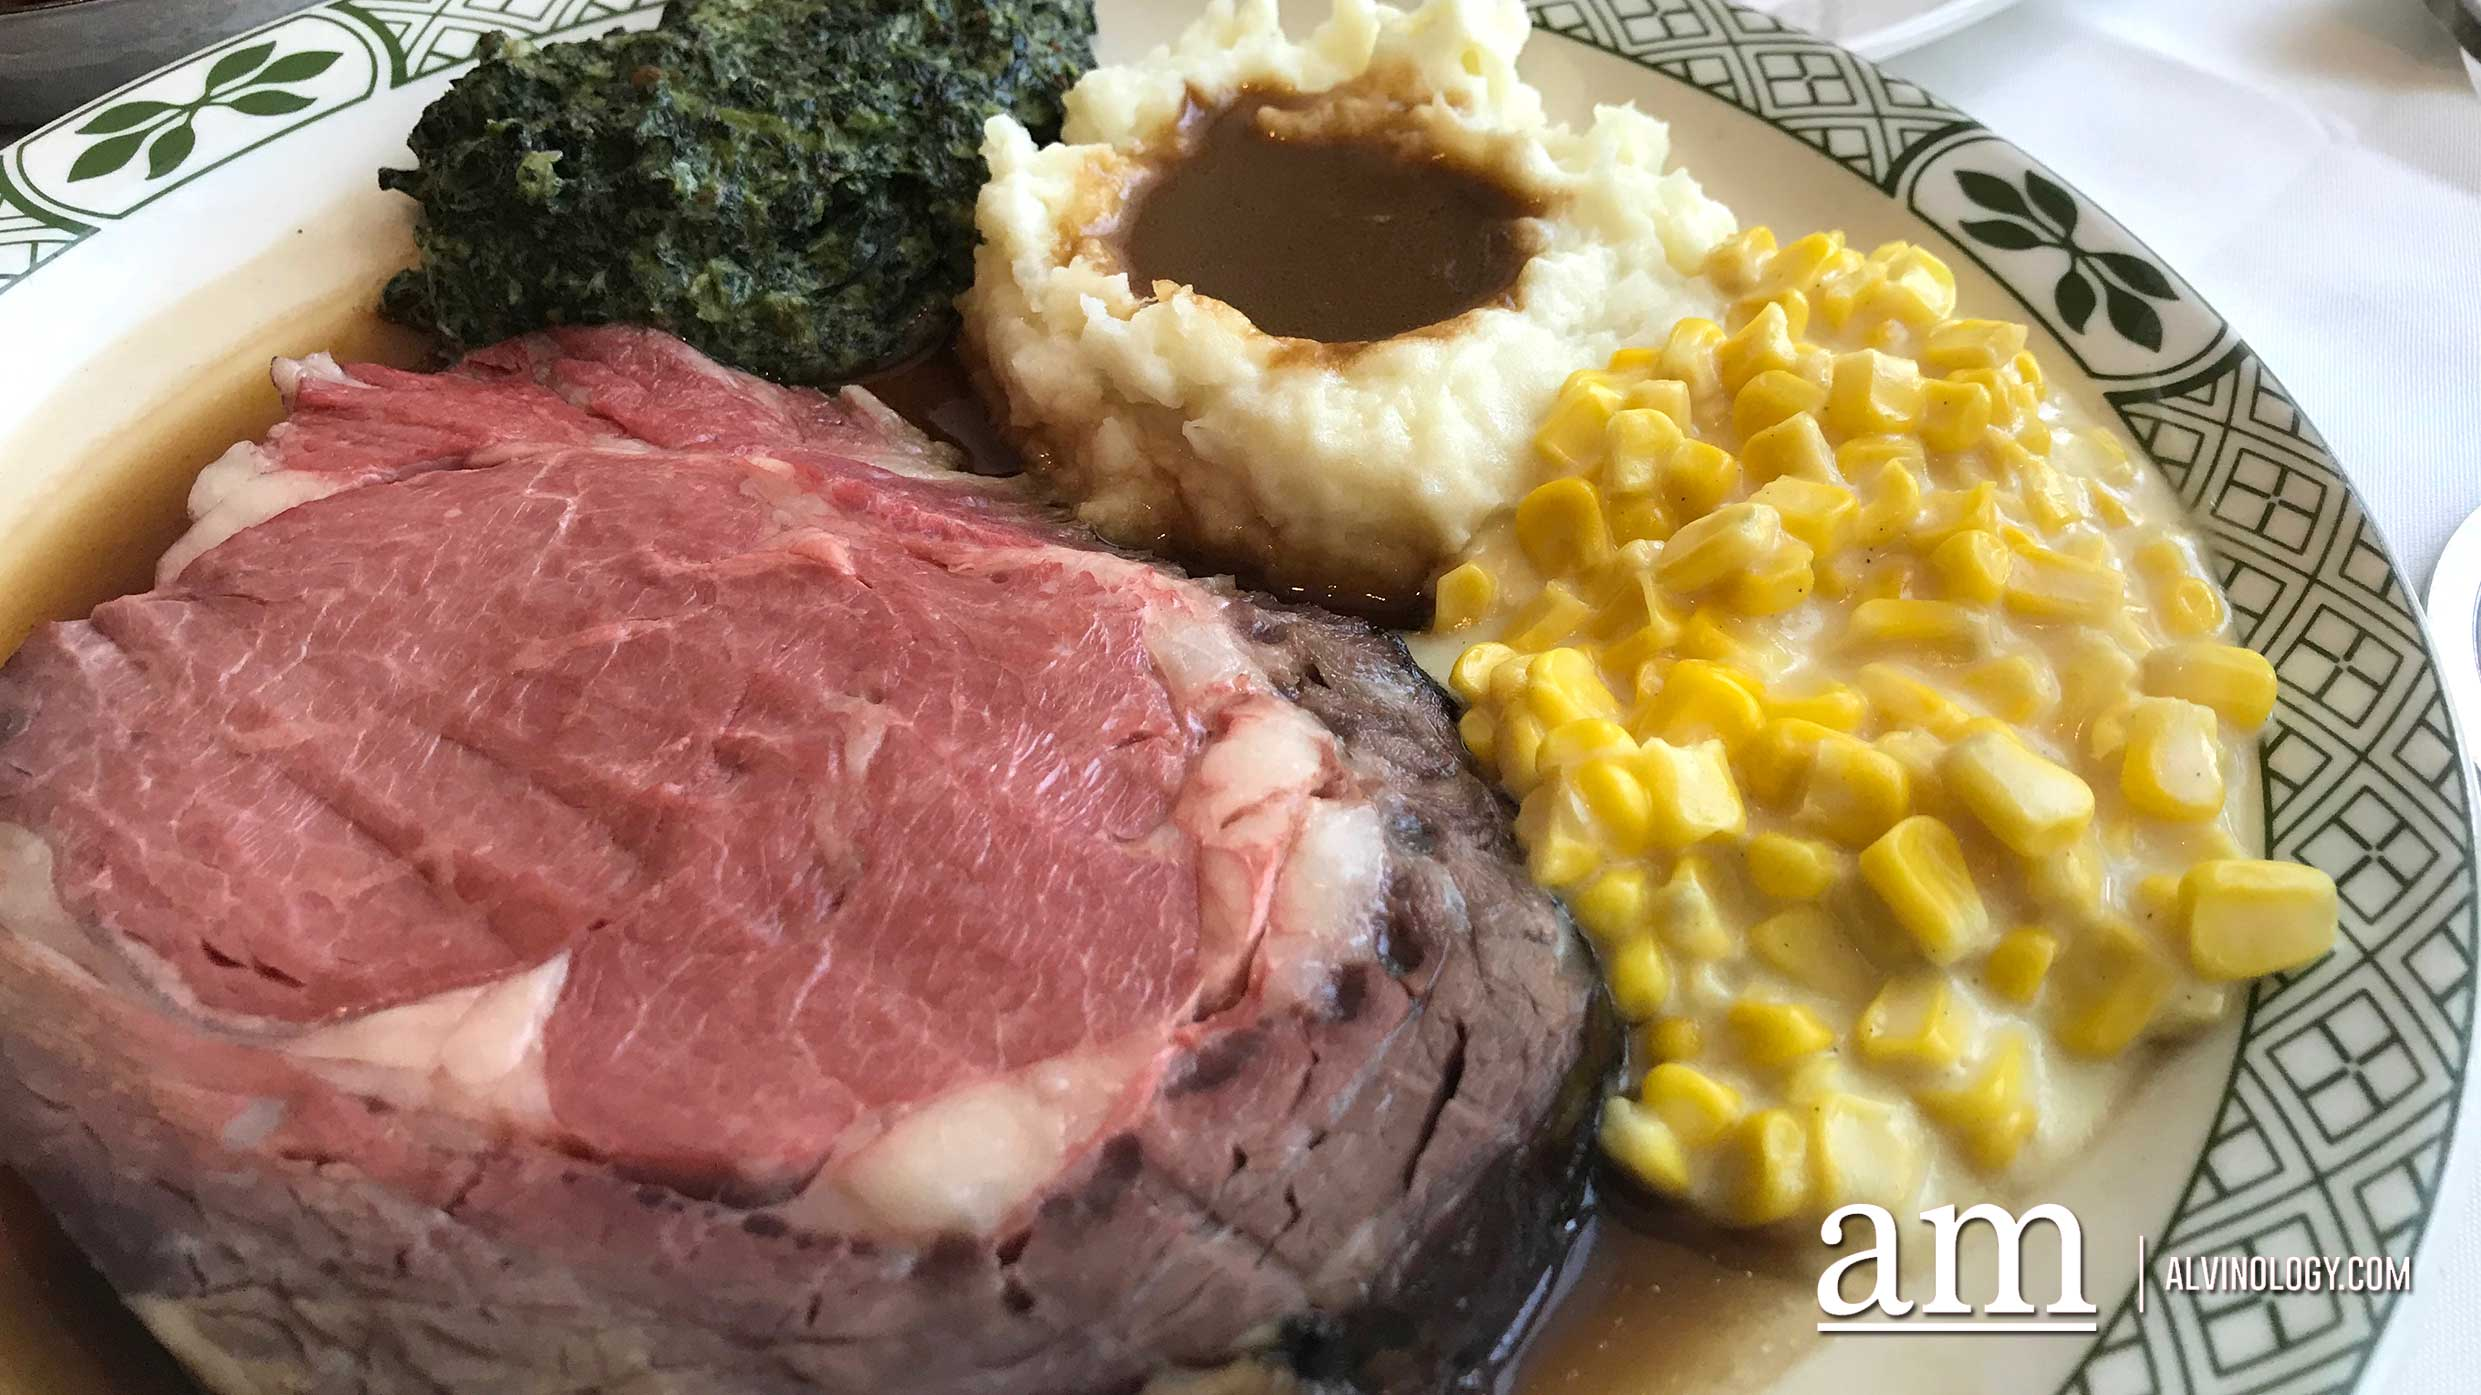 Let The Romance Begin - Signature roasted USDA prime rib of beef, 180 grams roasted prime rib of beef carved and served with US Idaho mashed potatoes, Yorkshire pudding, whipped cream horseradish, with a choice of creamed corn, creamed spinach or buttered peas